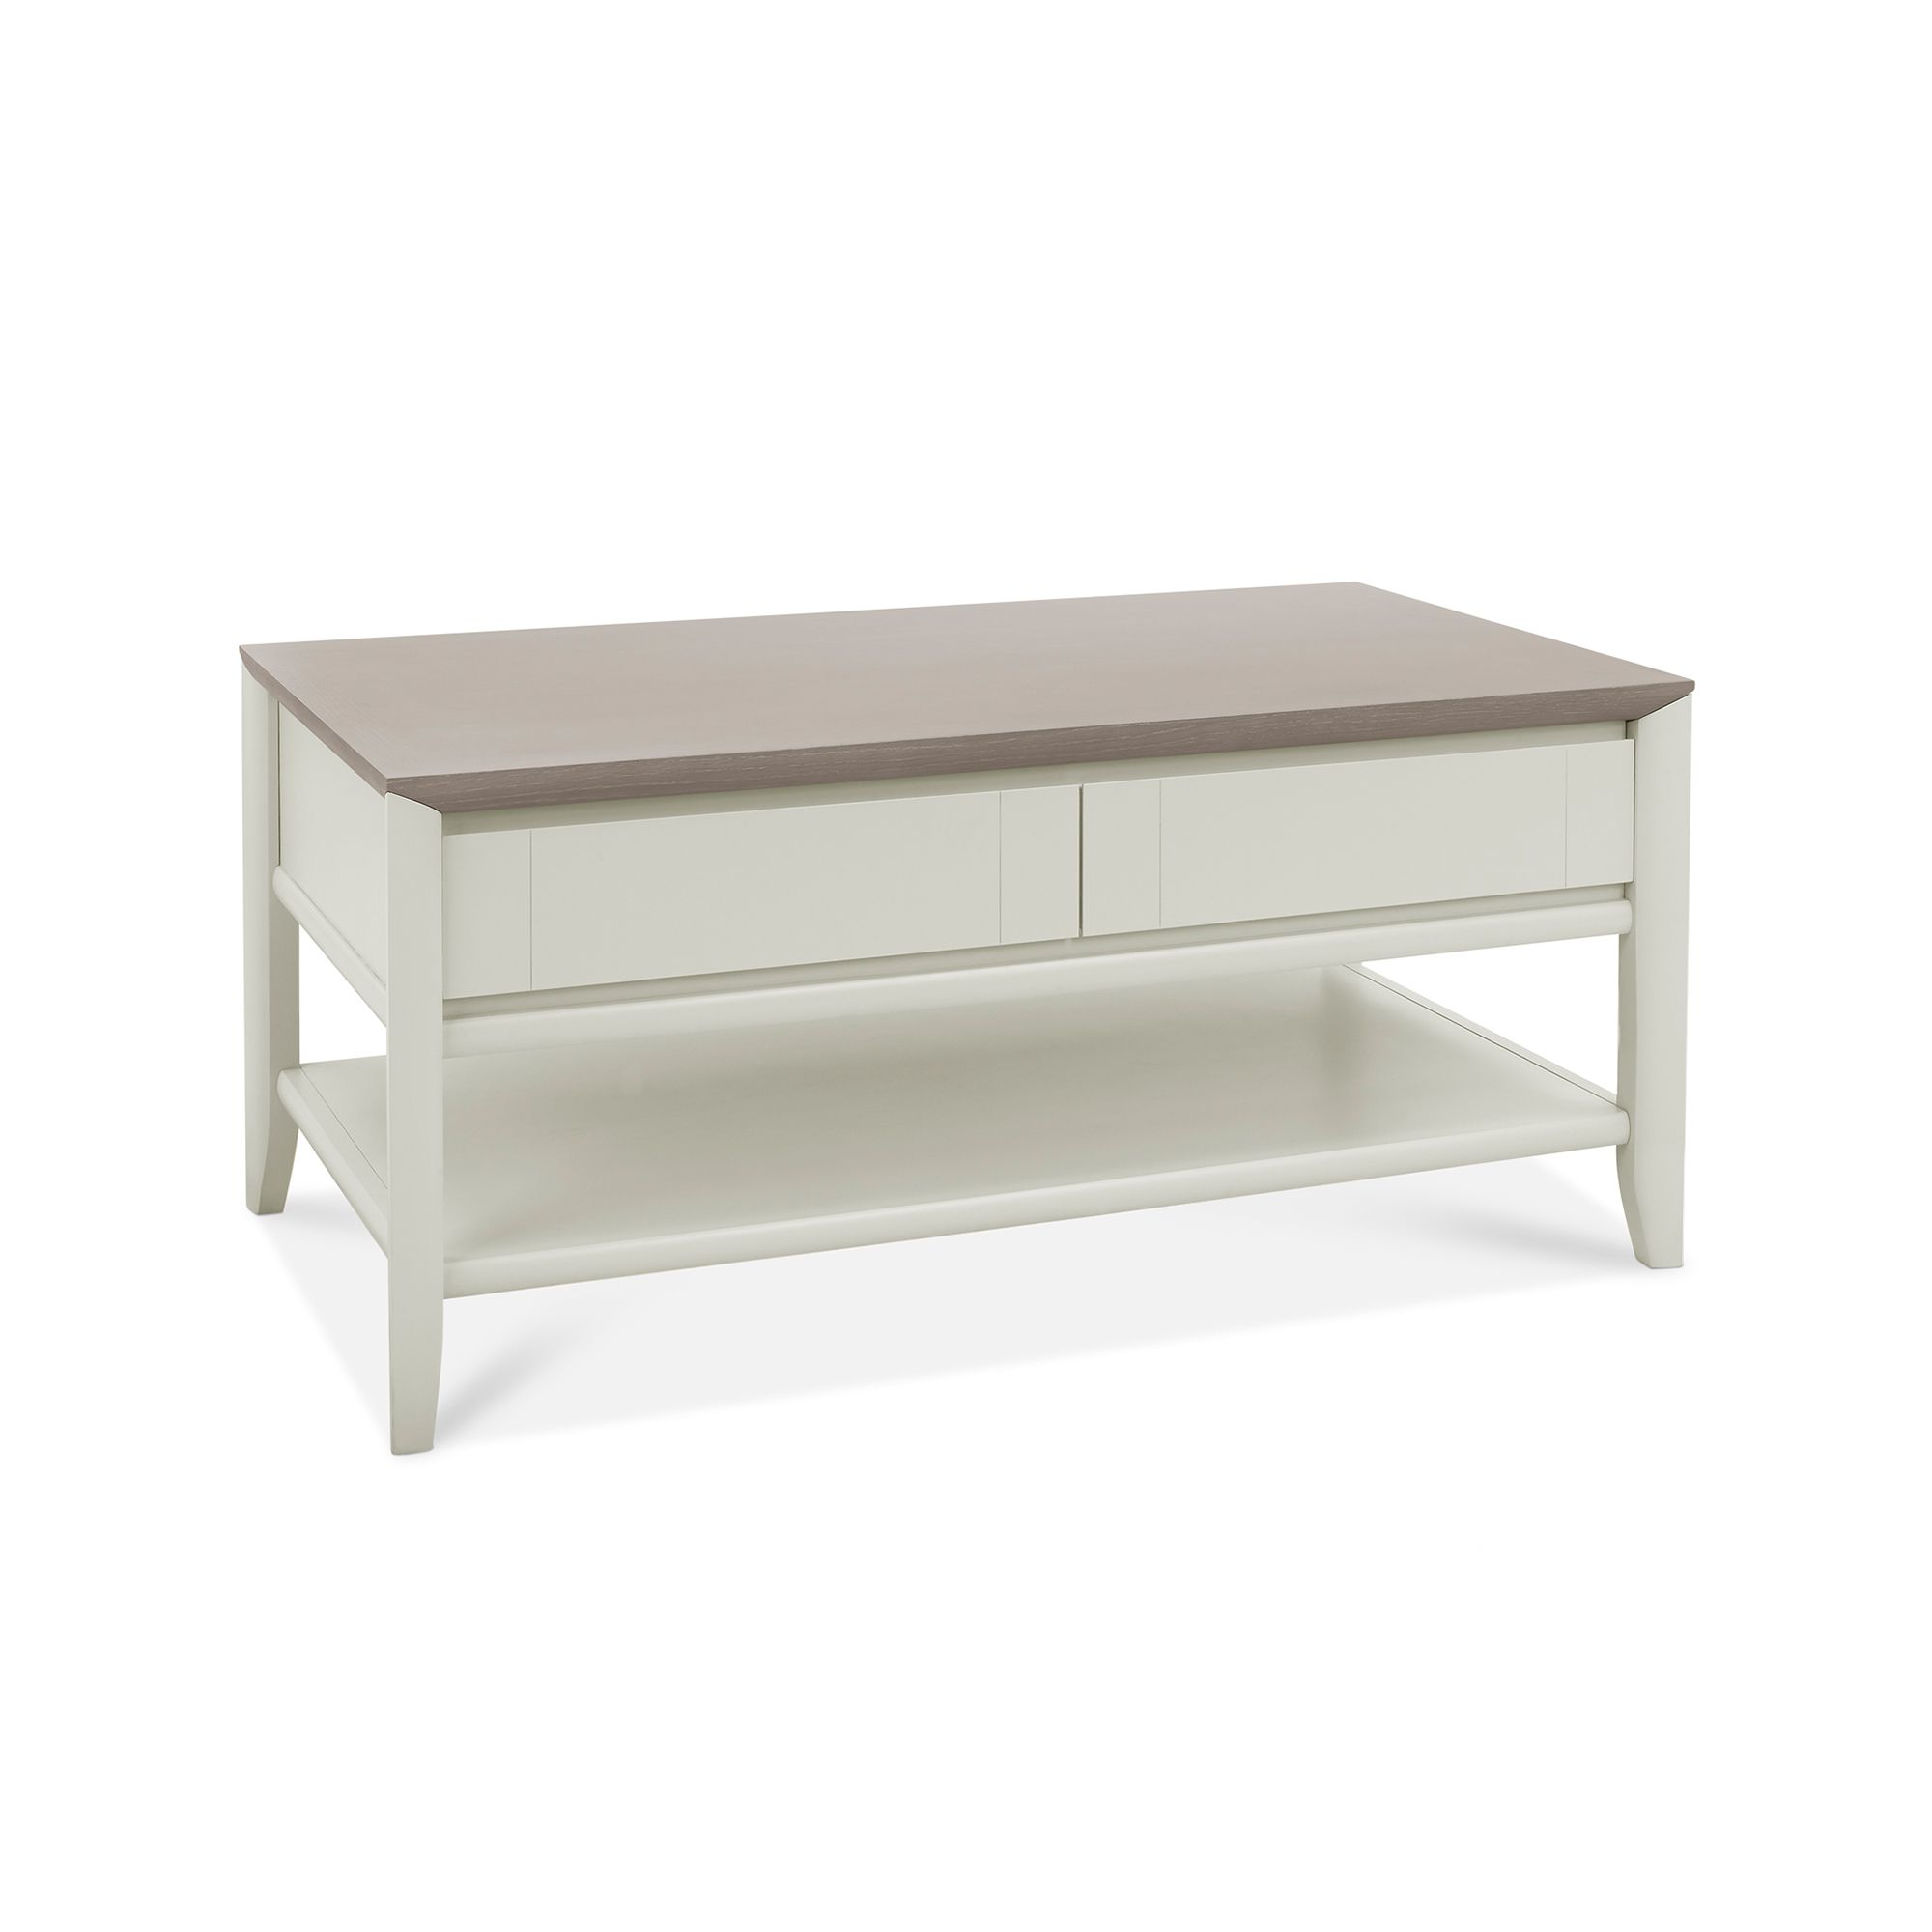 Oakley Grey Coffee Table with Drawer